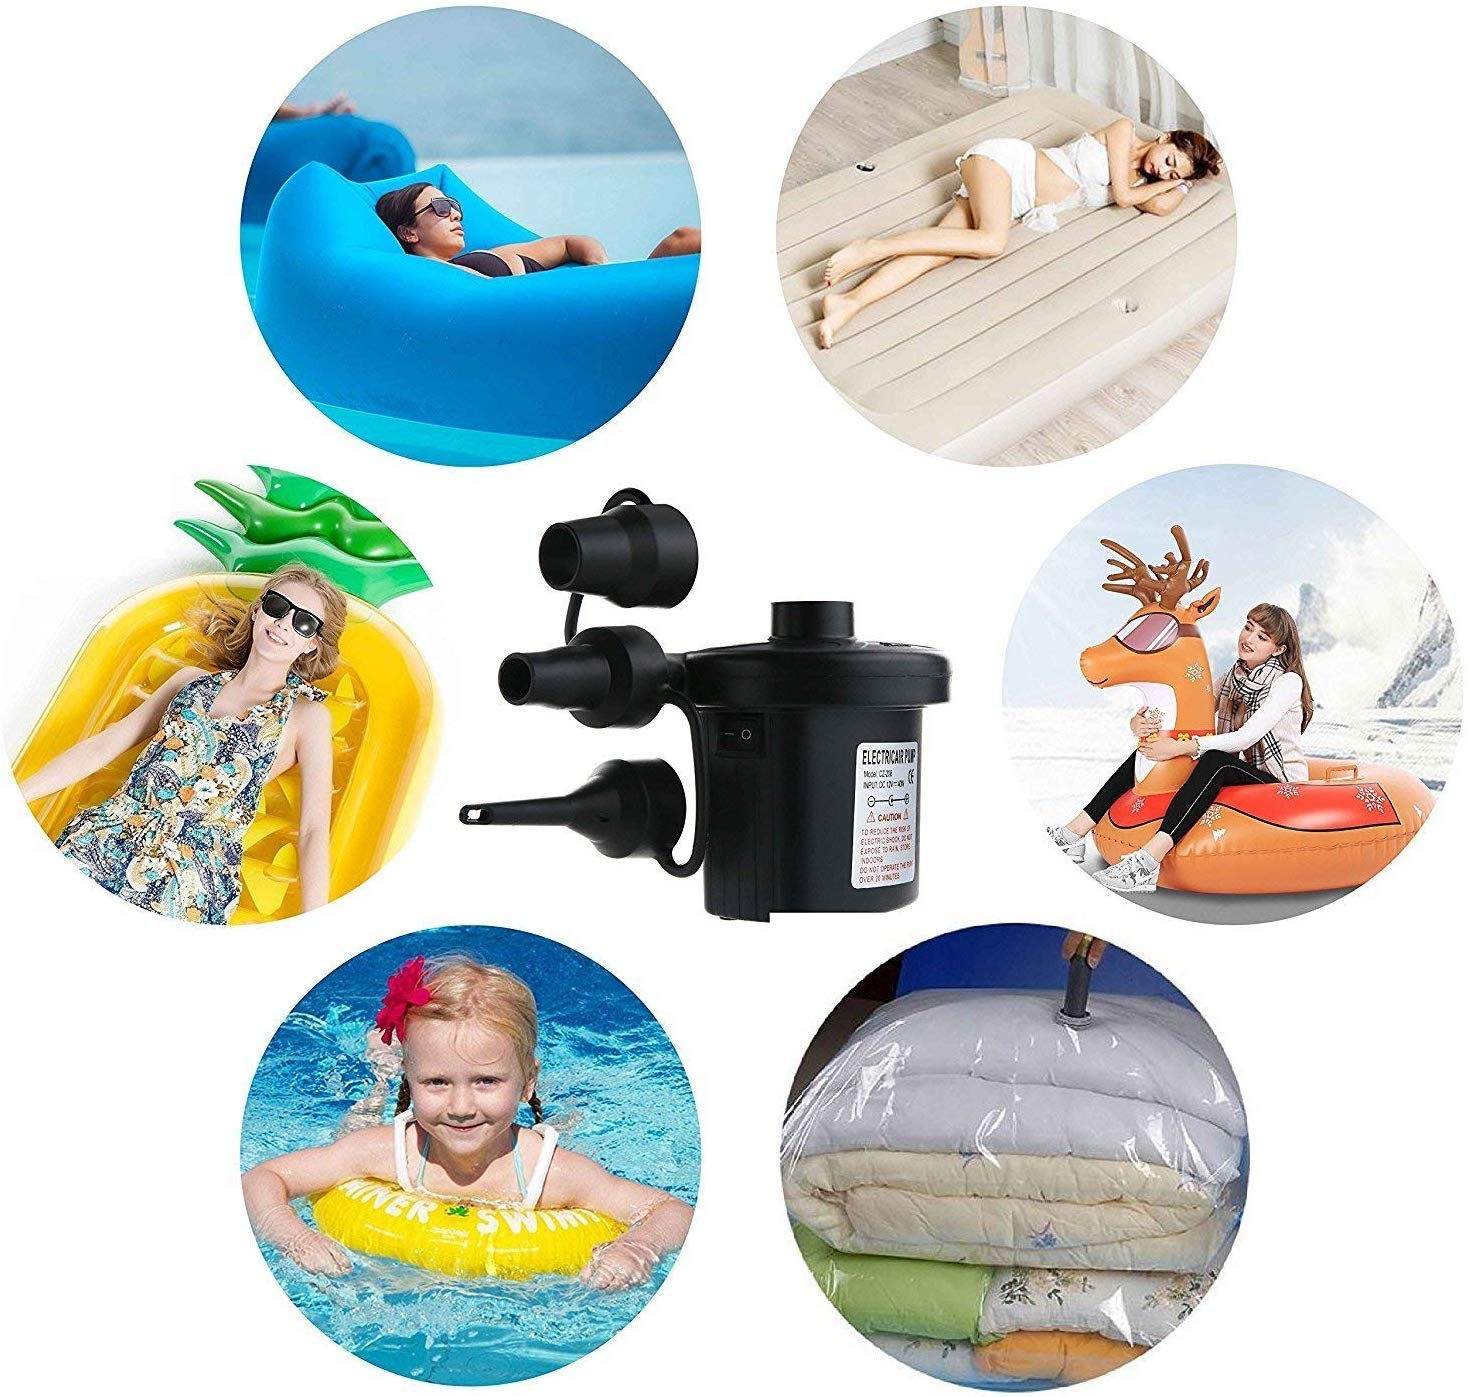 110V Electric Inflatable Pump Quick-Fill Inflator